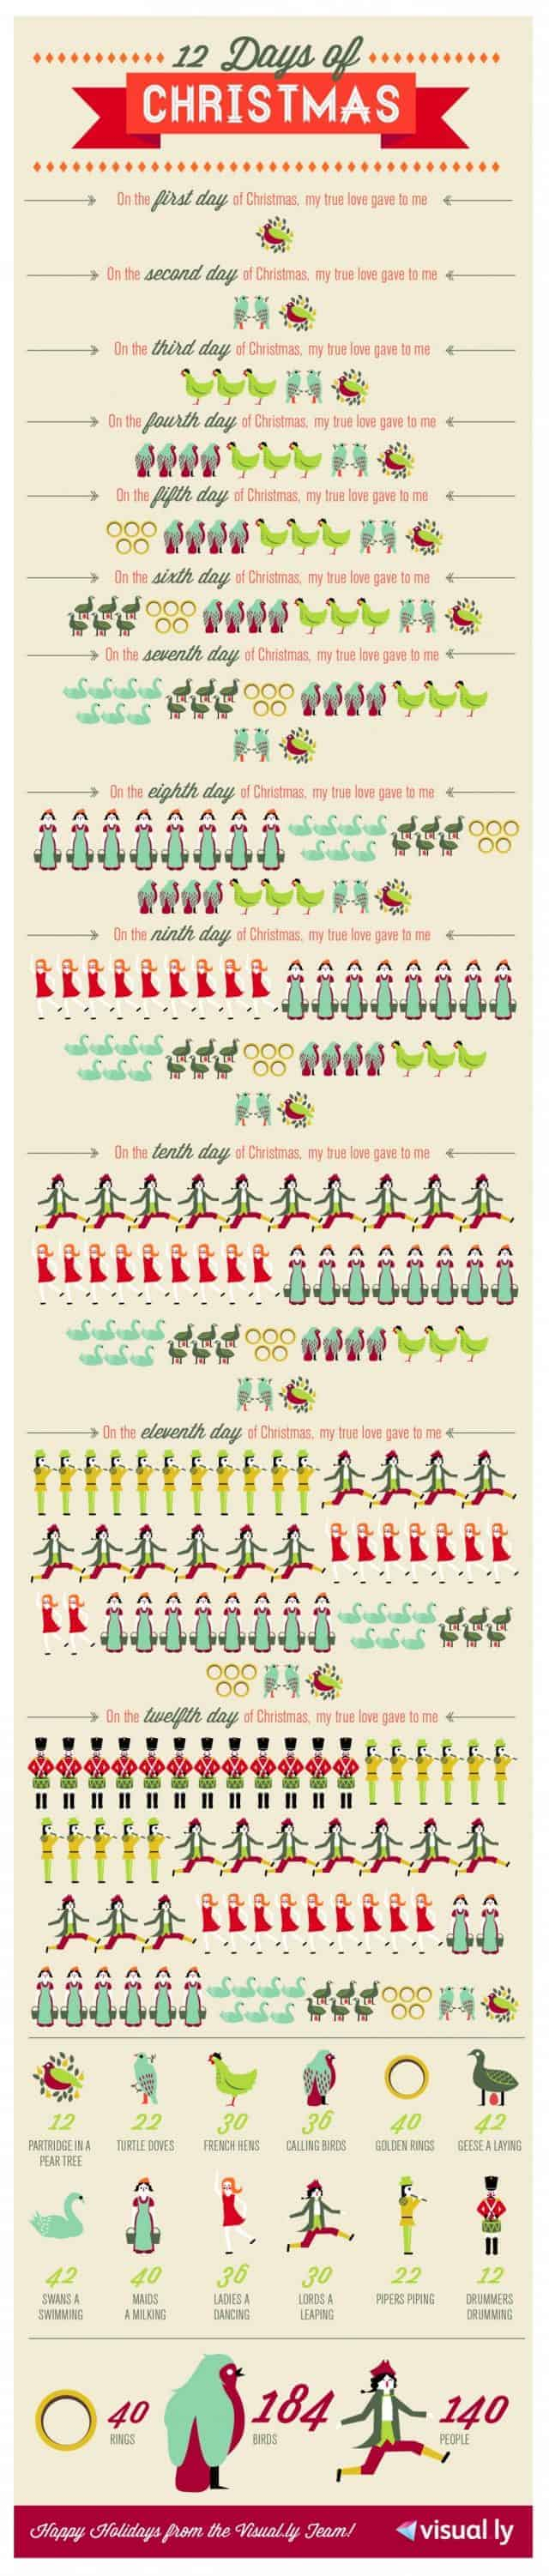 Twelve Days of Christmas | Daily Infographic